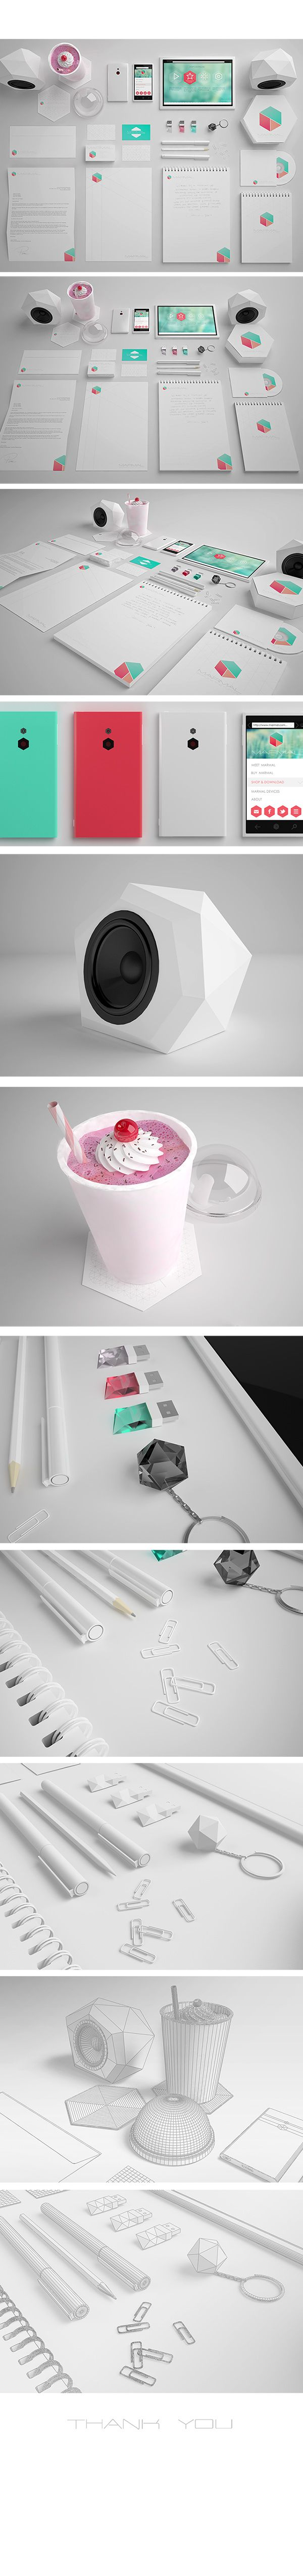 Marmal Brand Identity by Monika Kusheva, via Behance